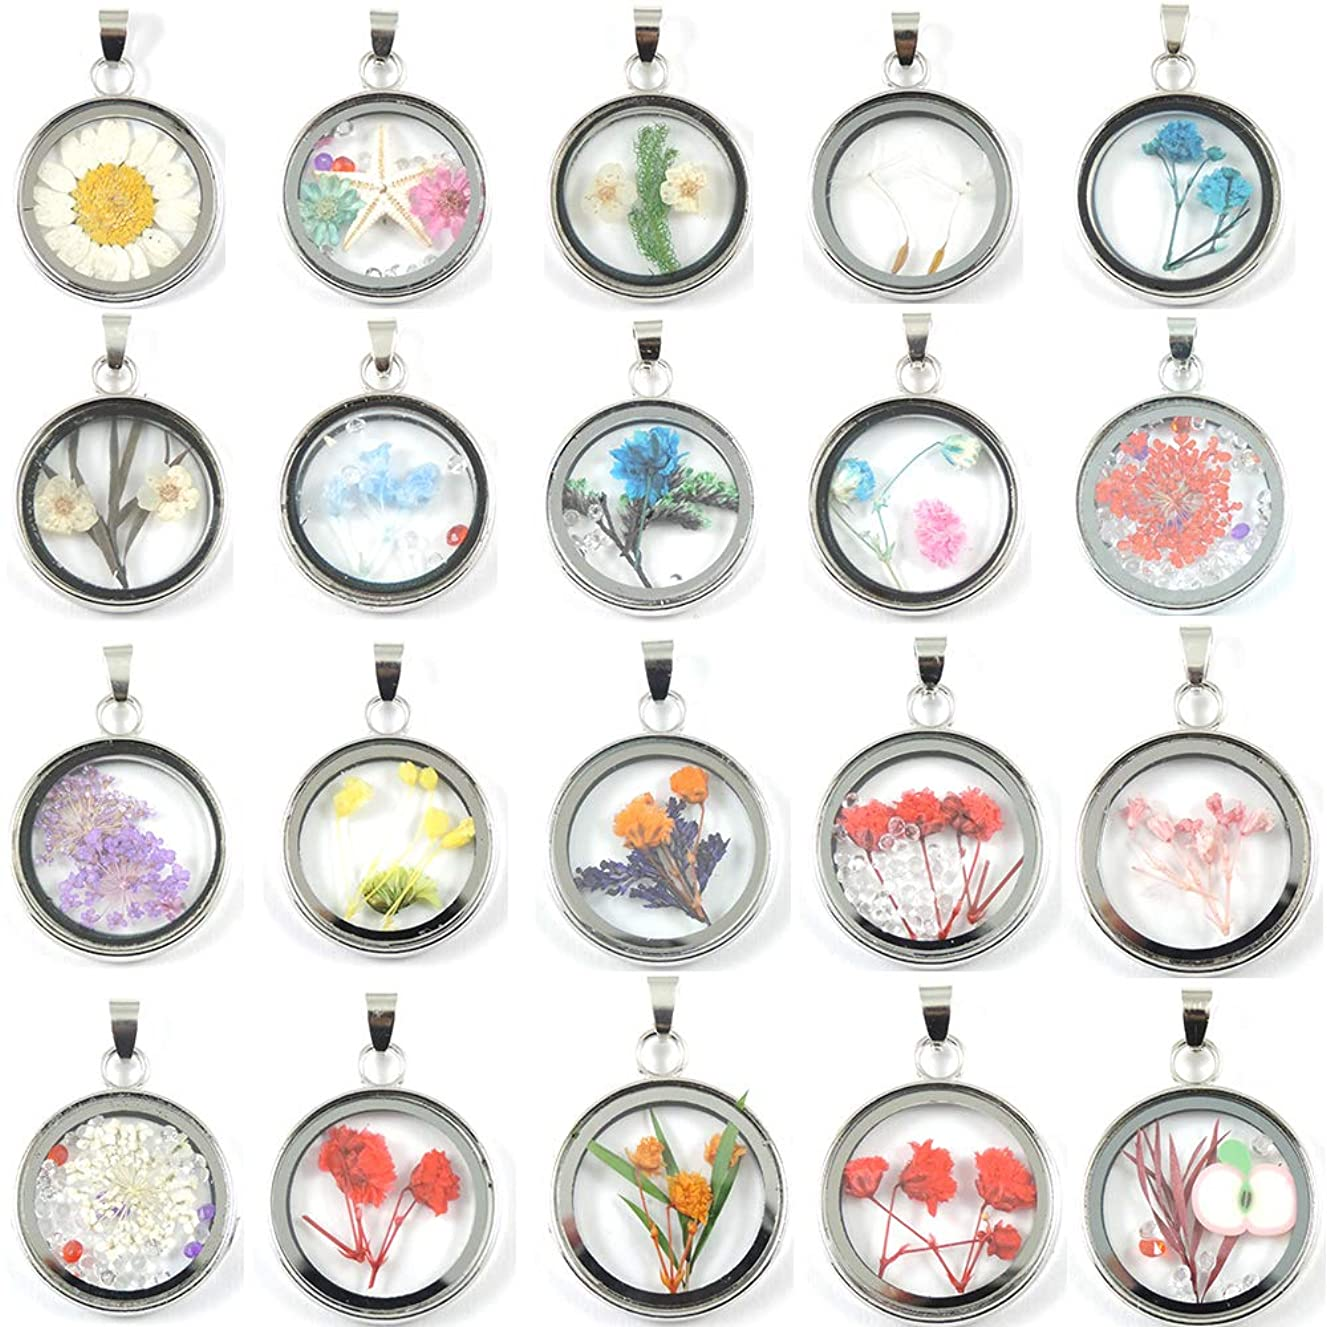 5pcs Mix Color Platinum Plated Round Dried Pressed Flower Plant Charm Time Gemstone Floating Pendant Necklace Making Supplies